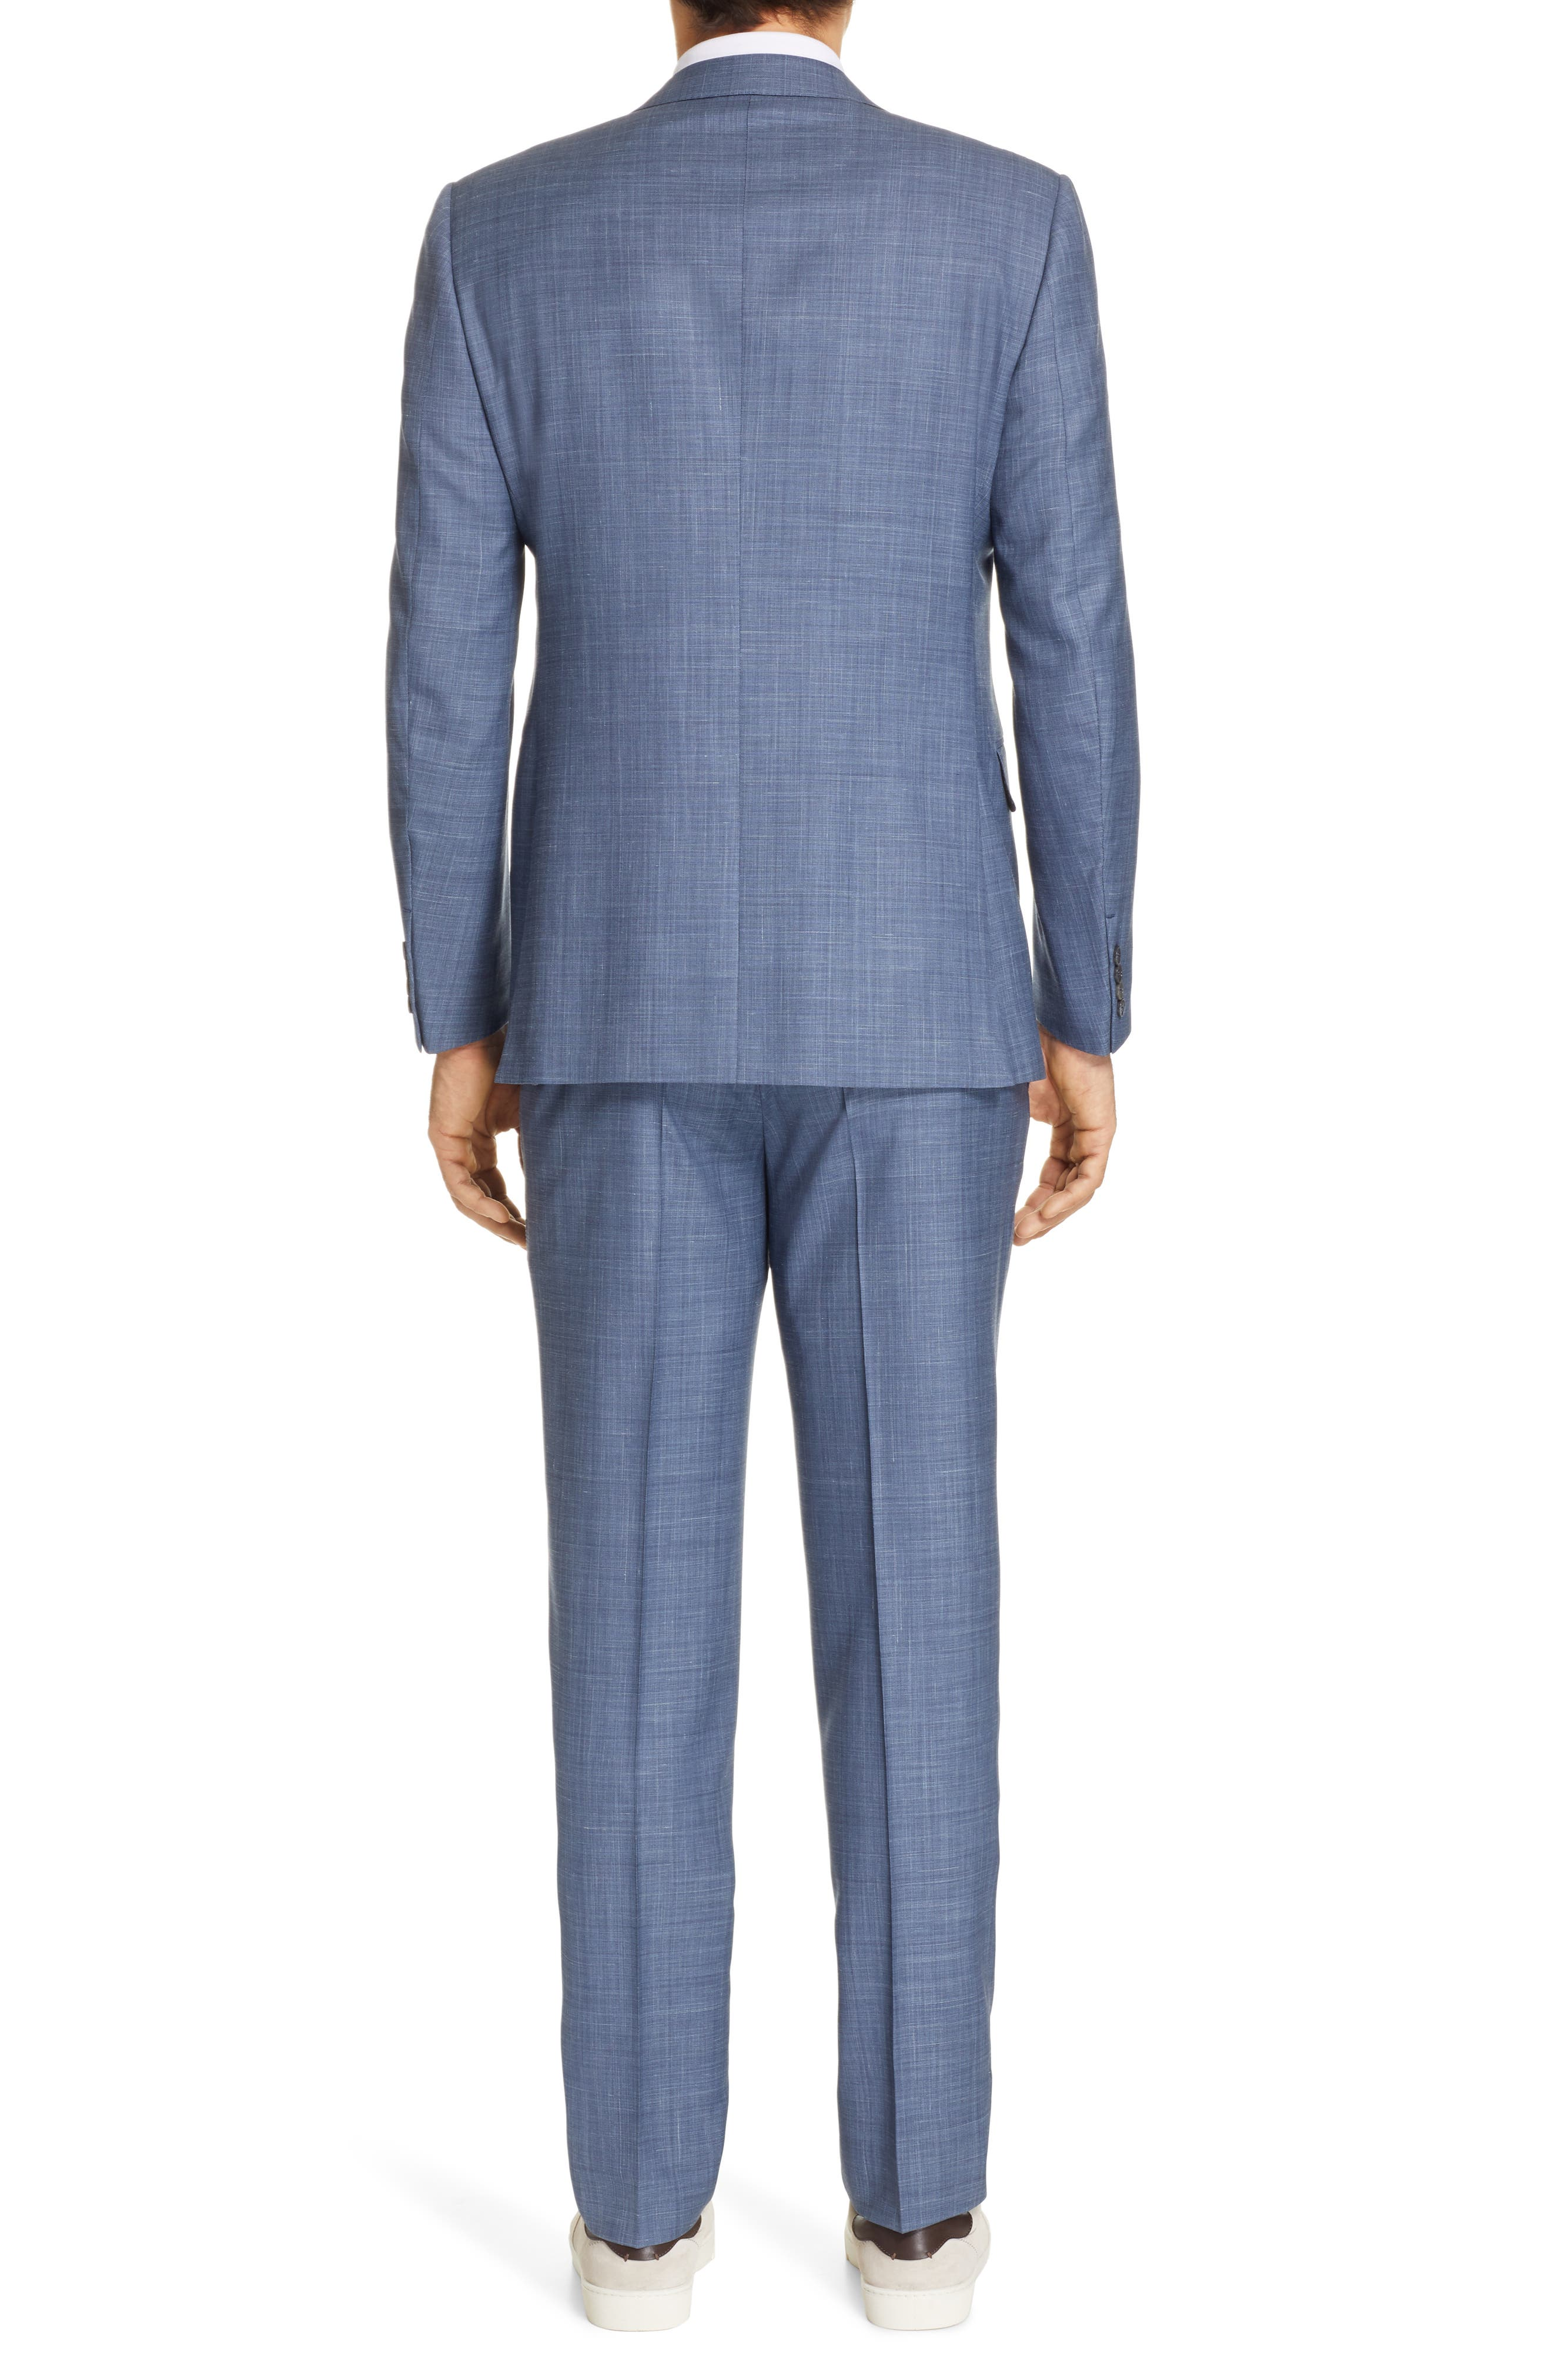 ERMENEGILDO ZEGNA, Trofeo Classic Fit Solid Wool Blend Suit, Alternate thumbnail 2, color, BLUE